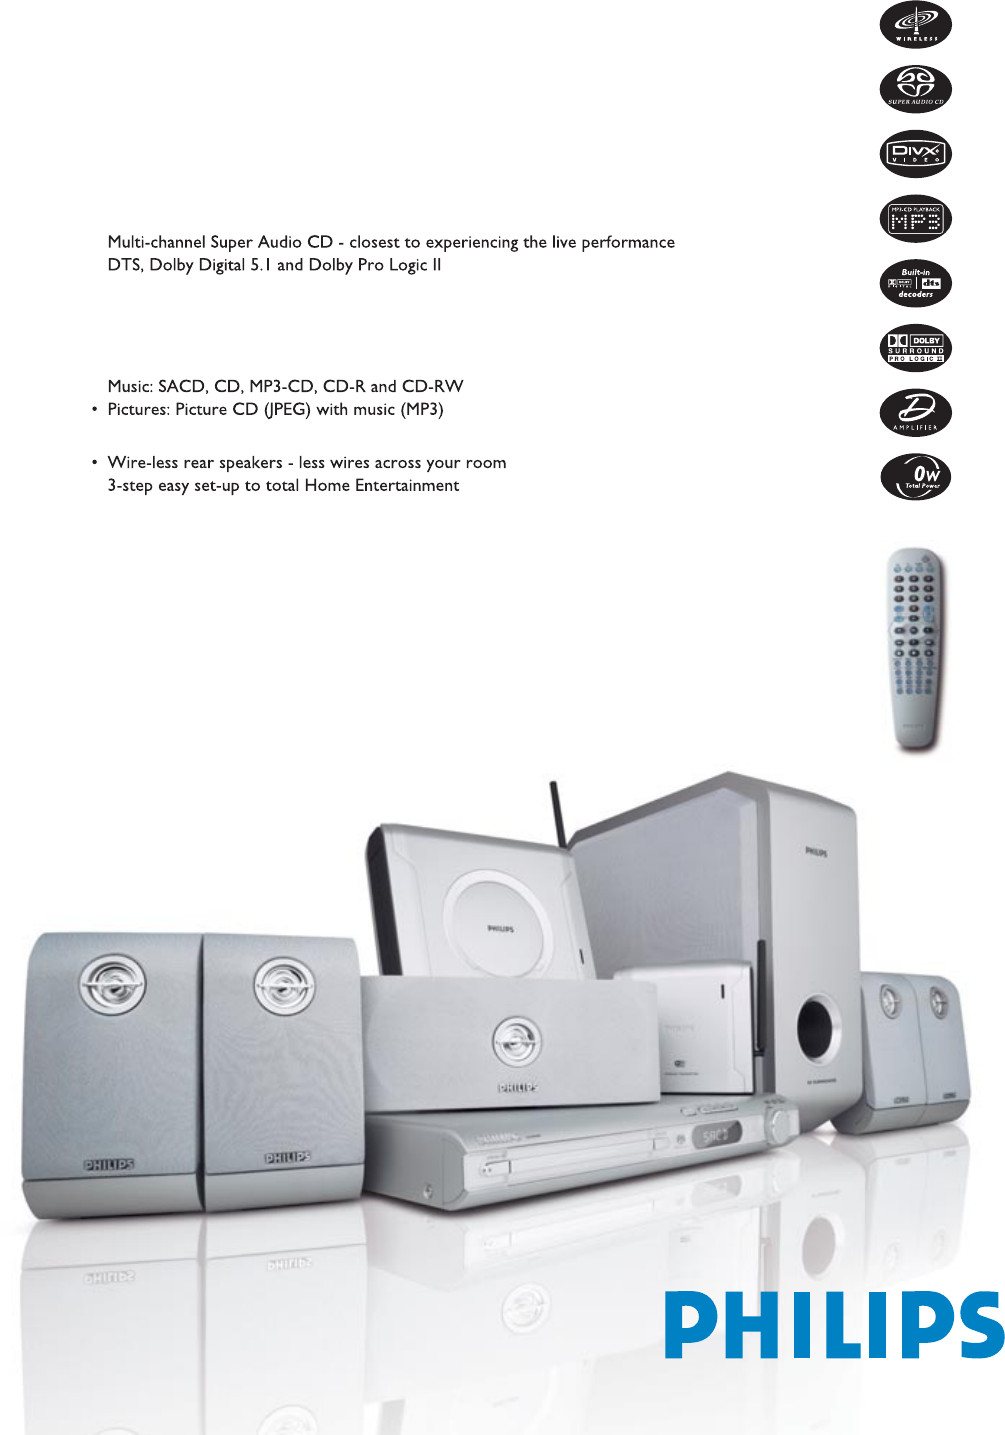 philips home theater system lx3950w user guide manualsonline com rh audio manualsonline com philips 5.1 home theater manual philips home theater user manual